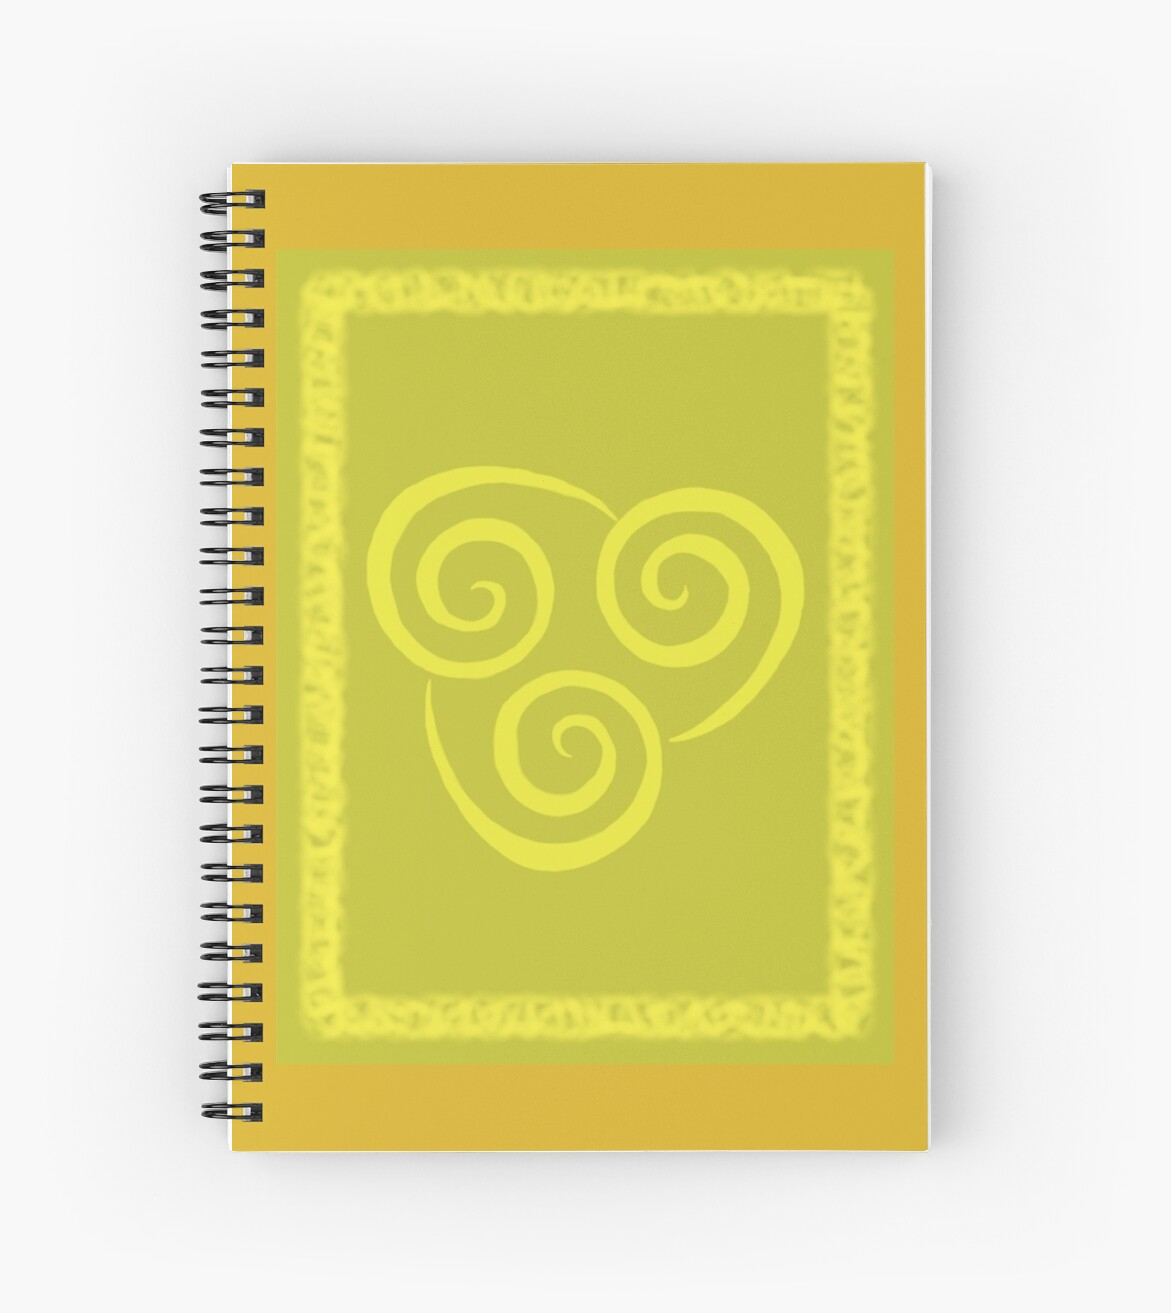 Avatar The Last Airbender Air Nomad Symbol Spiral Notebooks By